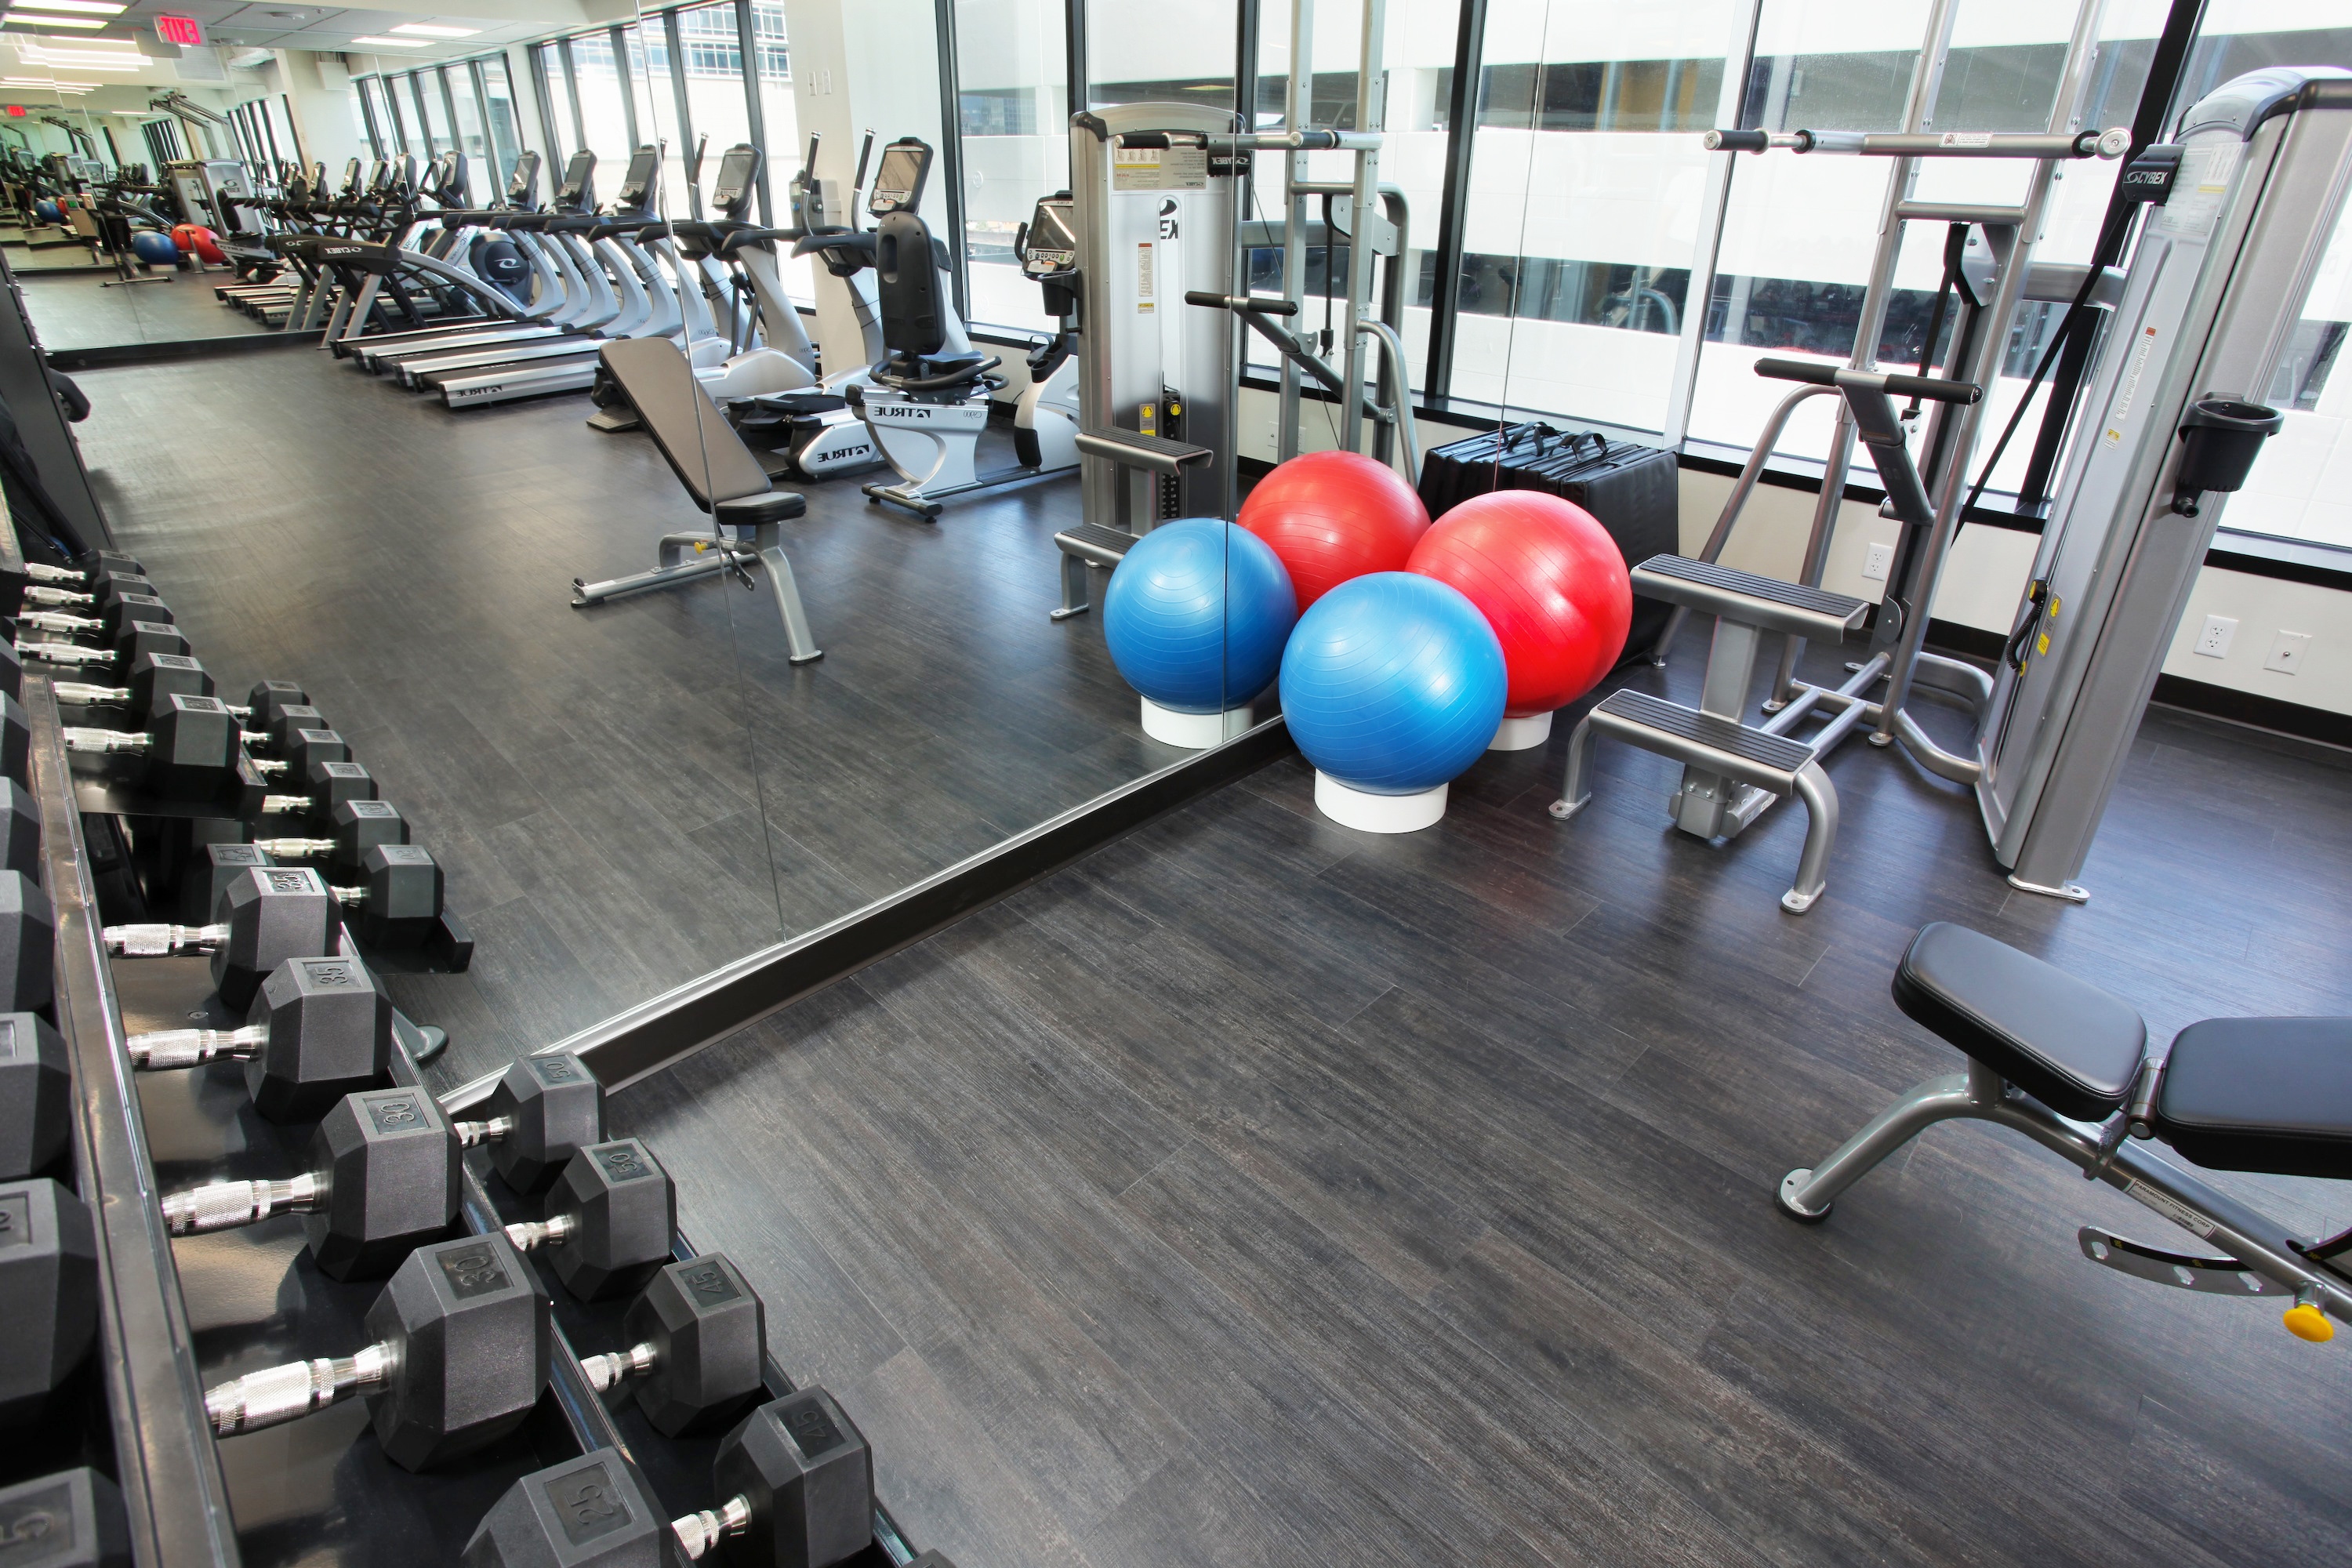 Morgan Stanley Tower Fitness Center | Morgan Stanley Tower